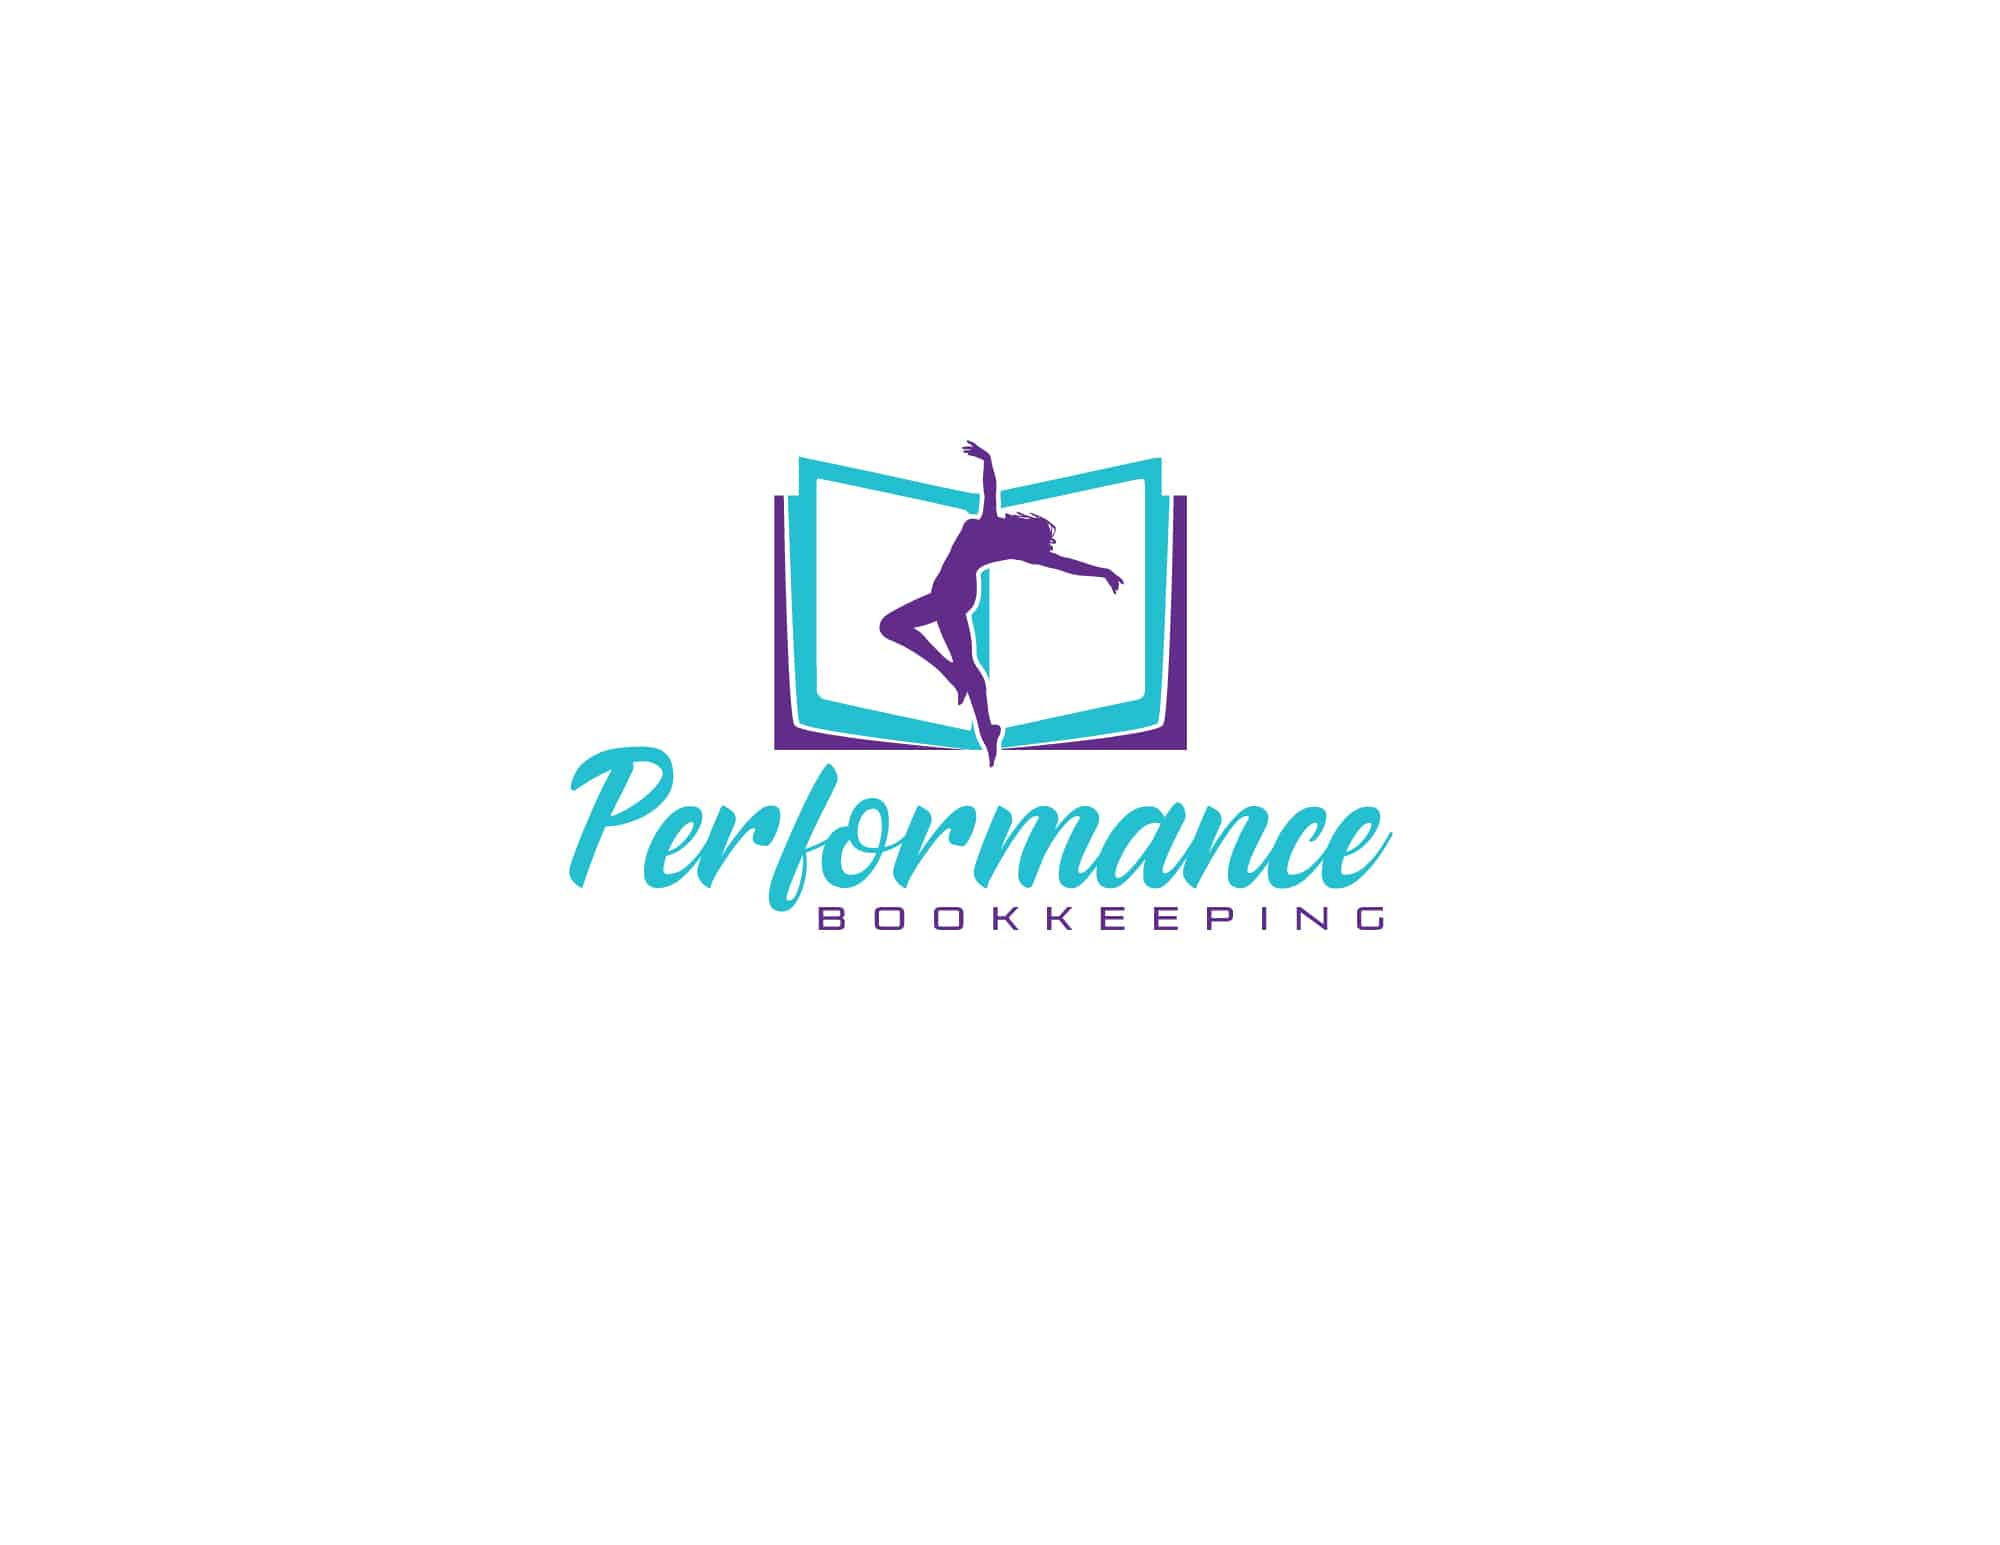 Performance Bookkeeping